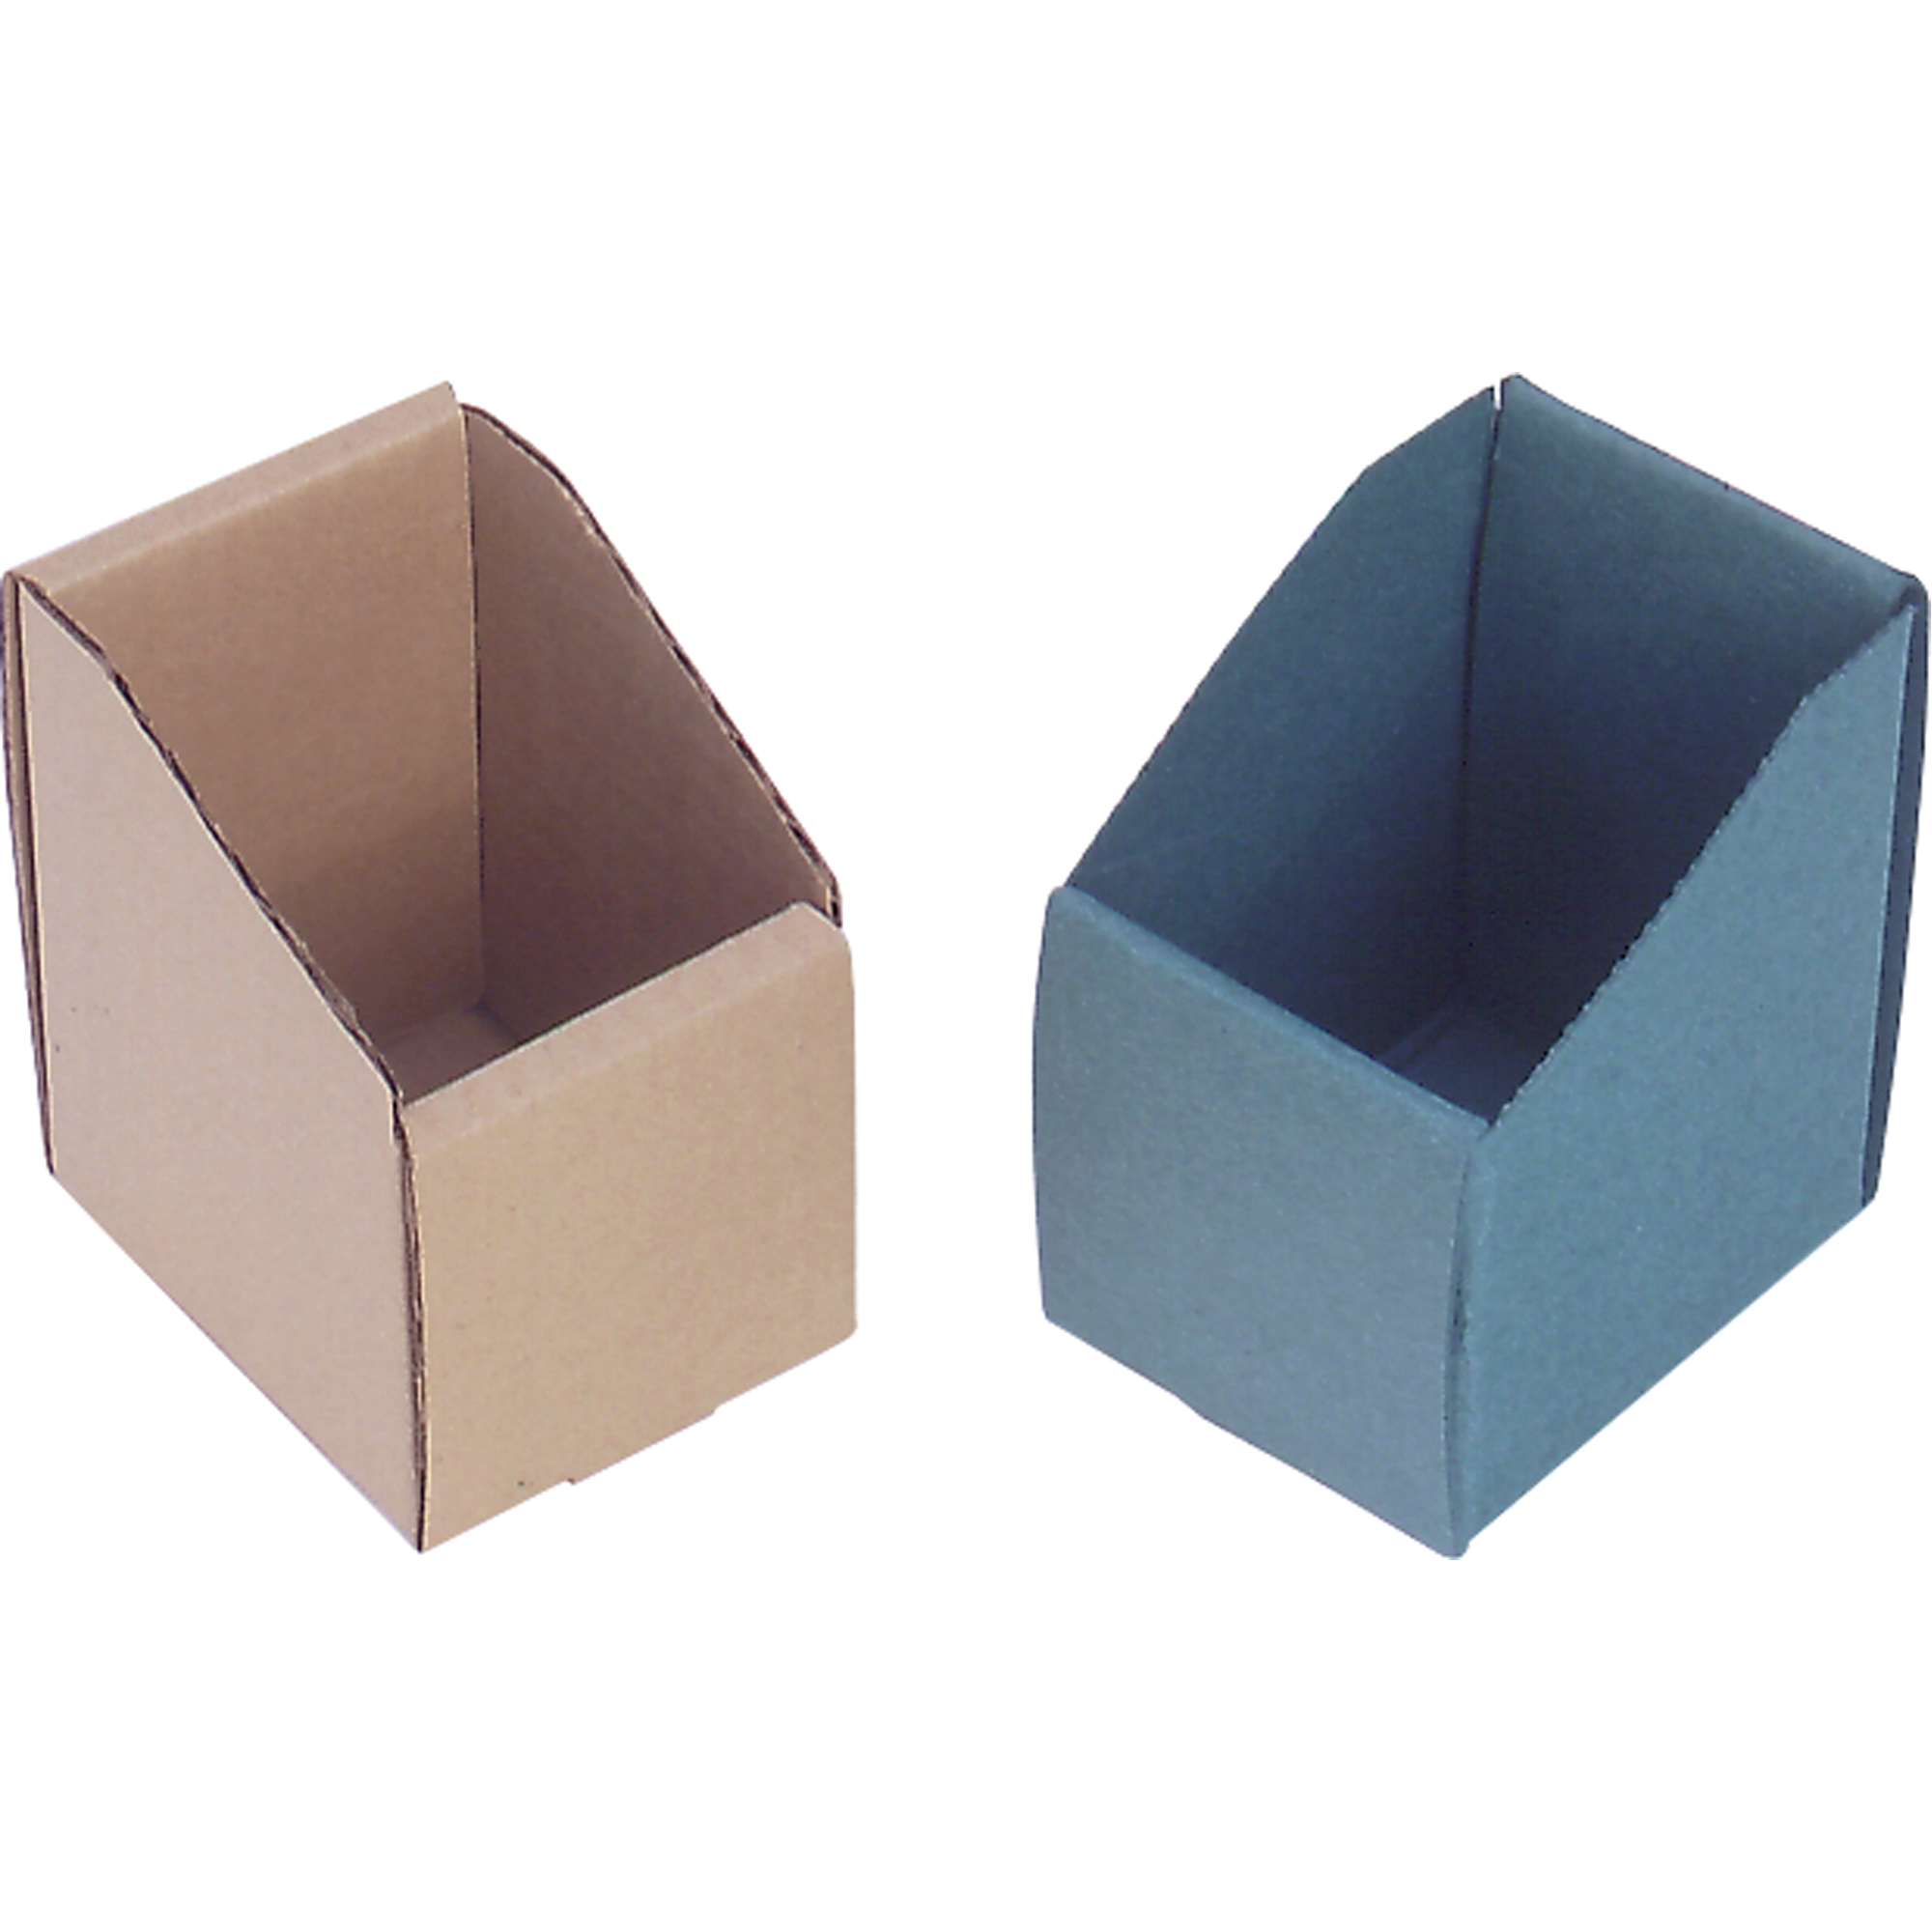 """Cardinal Boxes Corrugated 3 5/8"""" Deep Removable Divider W: 3 3/4 x H: 4 1/8, Beige."""